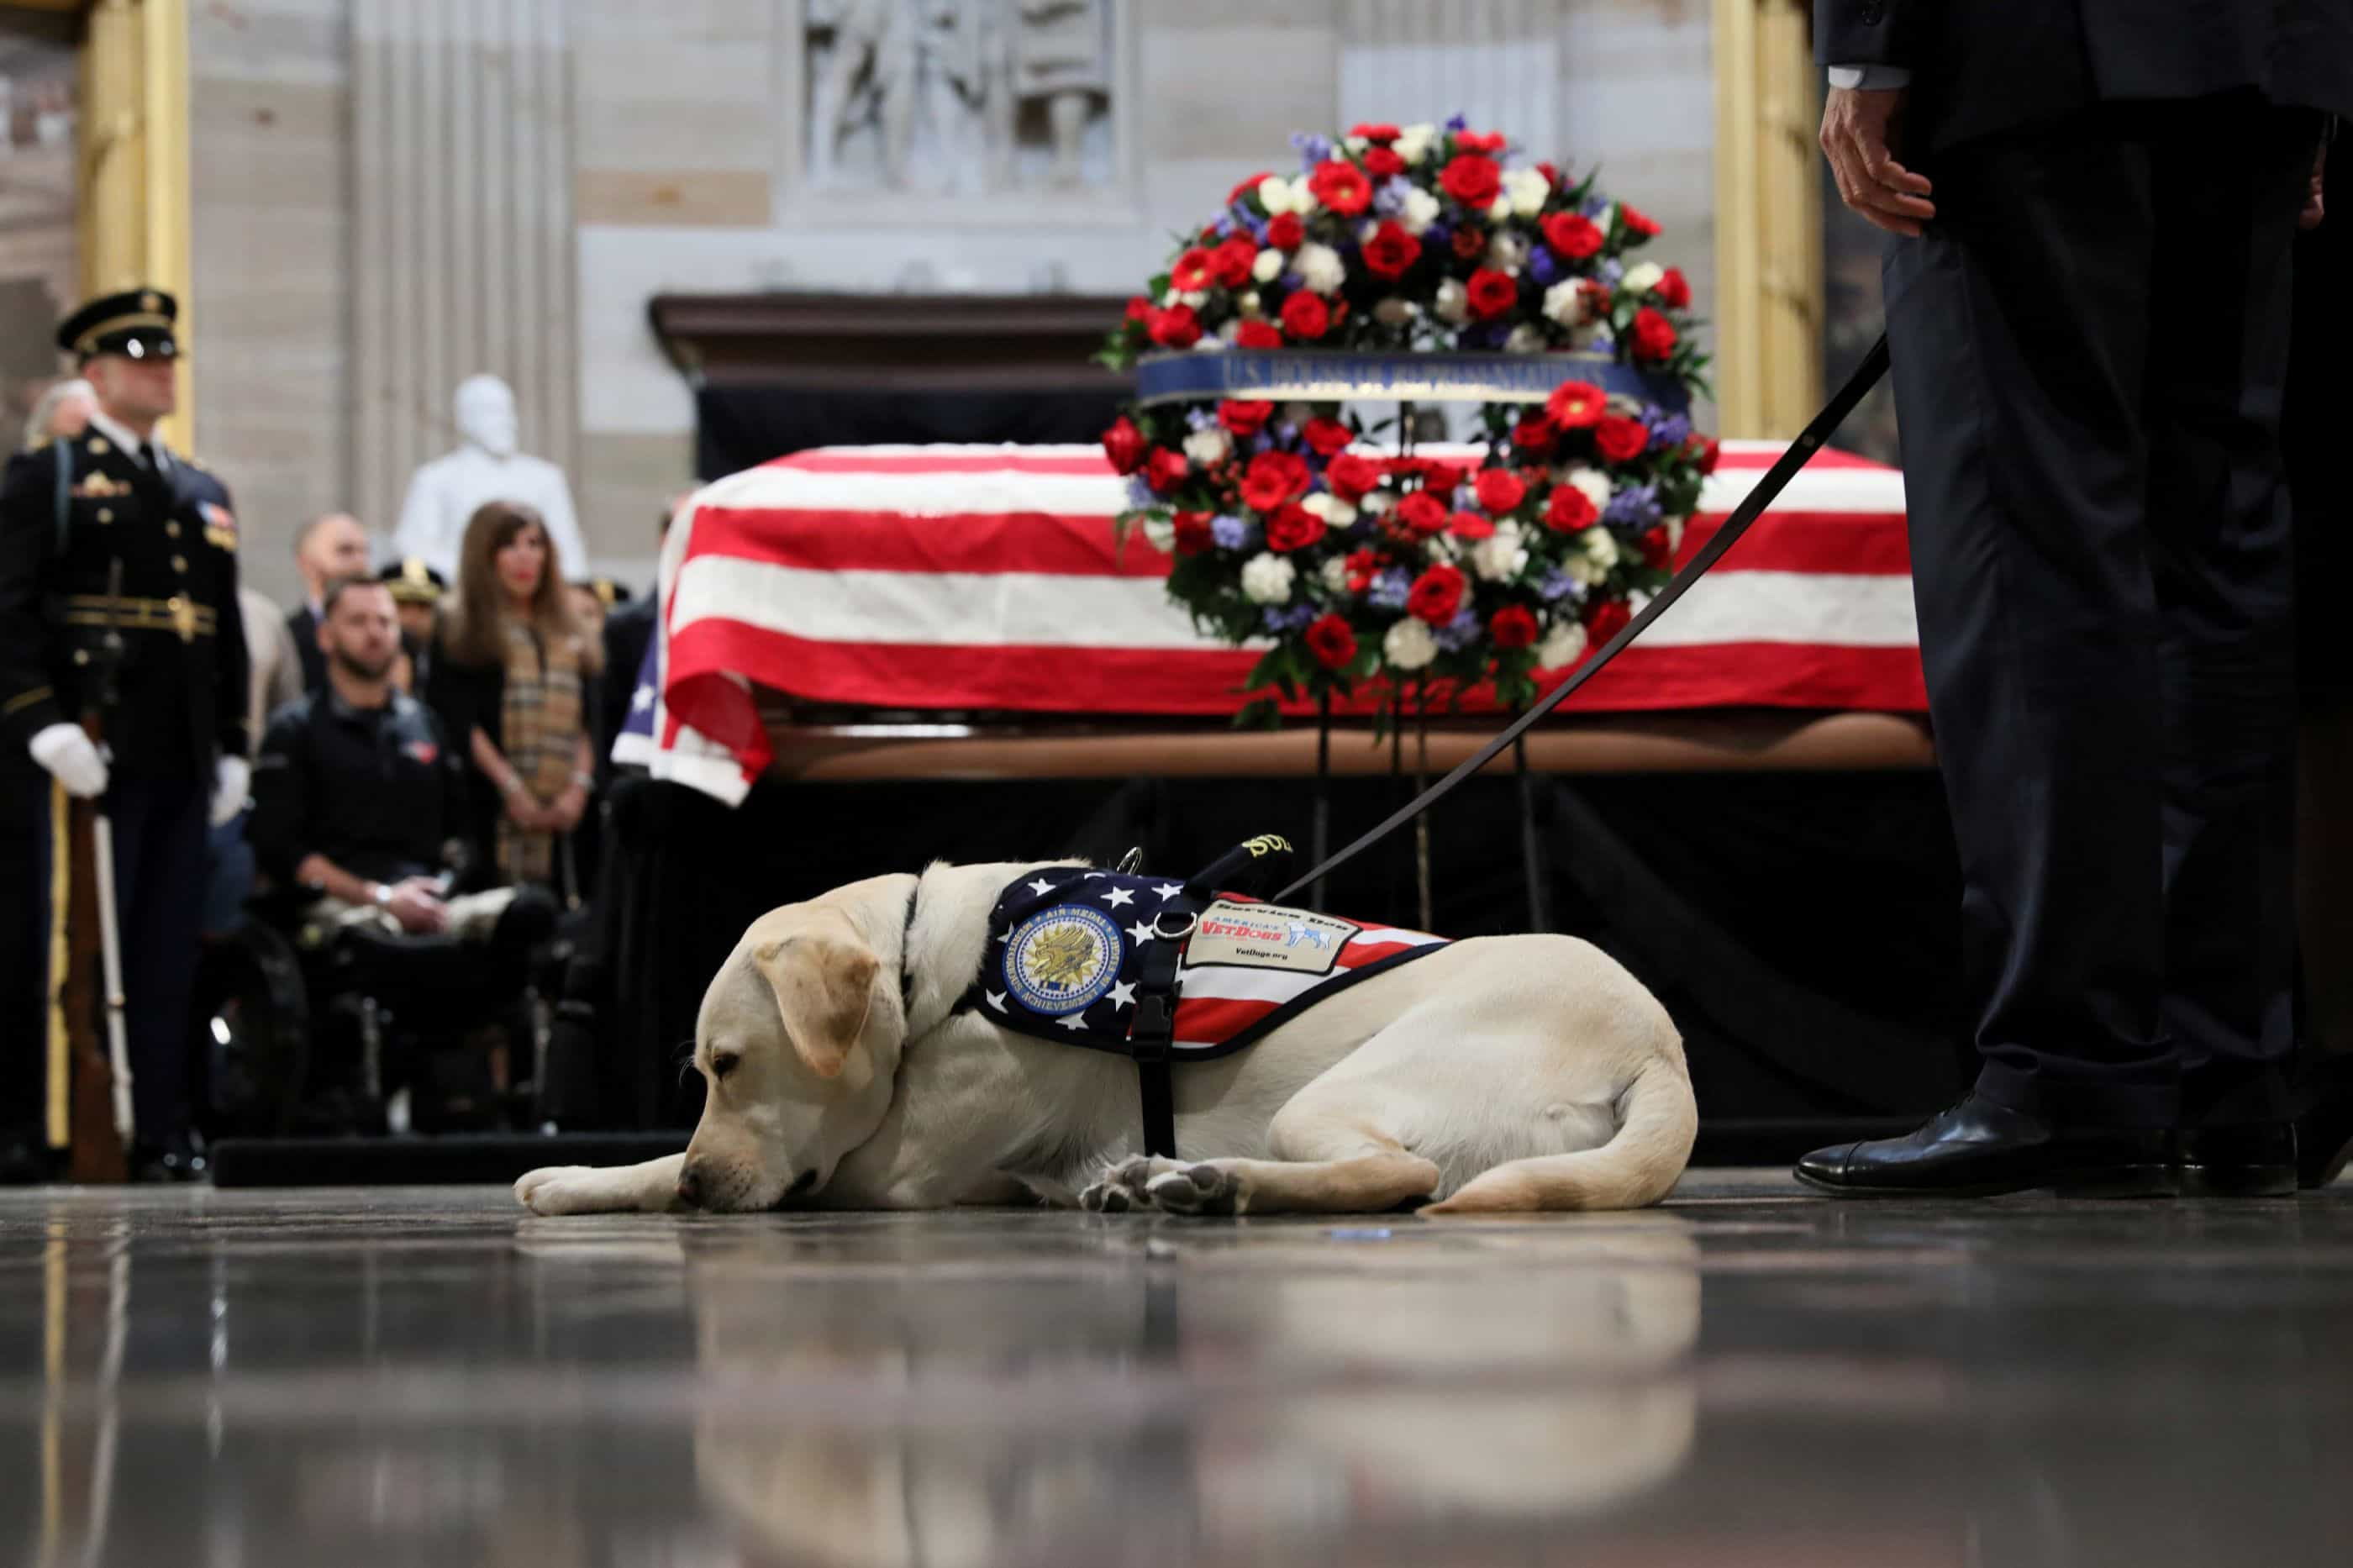 O luto de Sully, o cão do antigo presidente, no adeus a George H.W. Bush